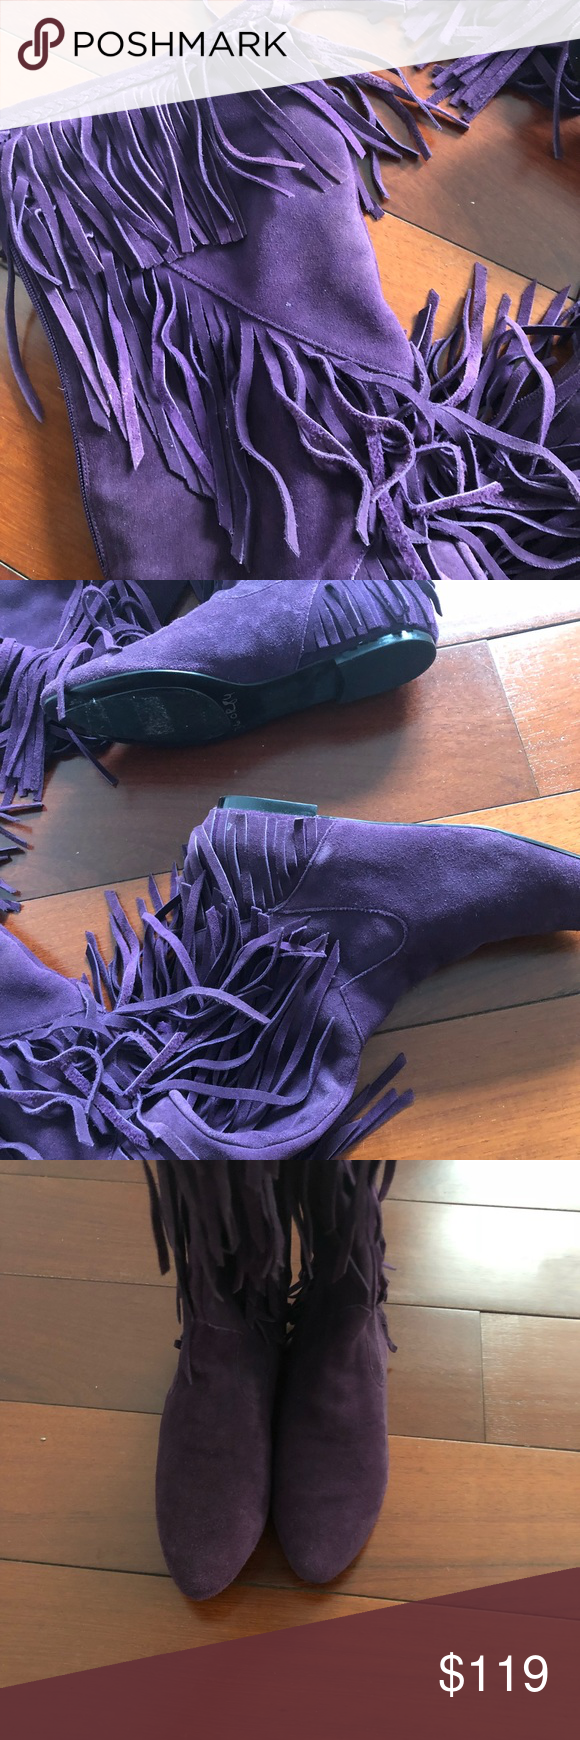 78535d28cef98b Sam Edelman fringe boots 7.5 Over the knee height Purple suede with fringe  Back zipper Fabric lining Sam Edelman Shoes Over the Knee Boots